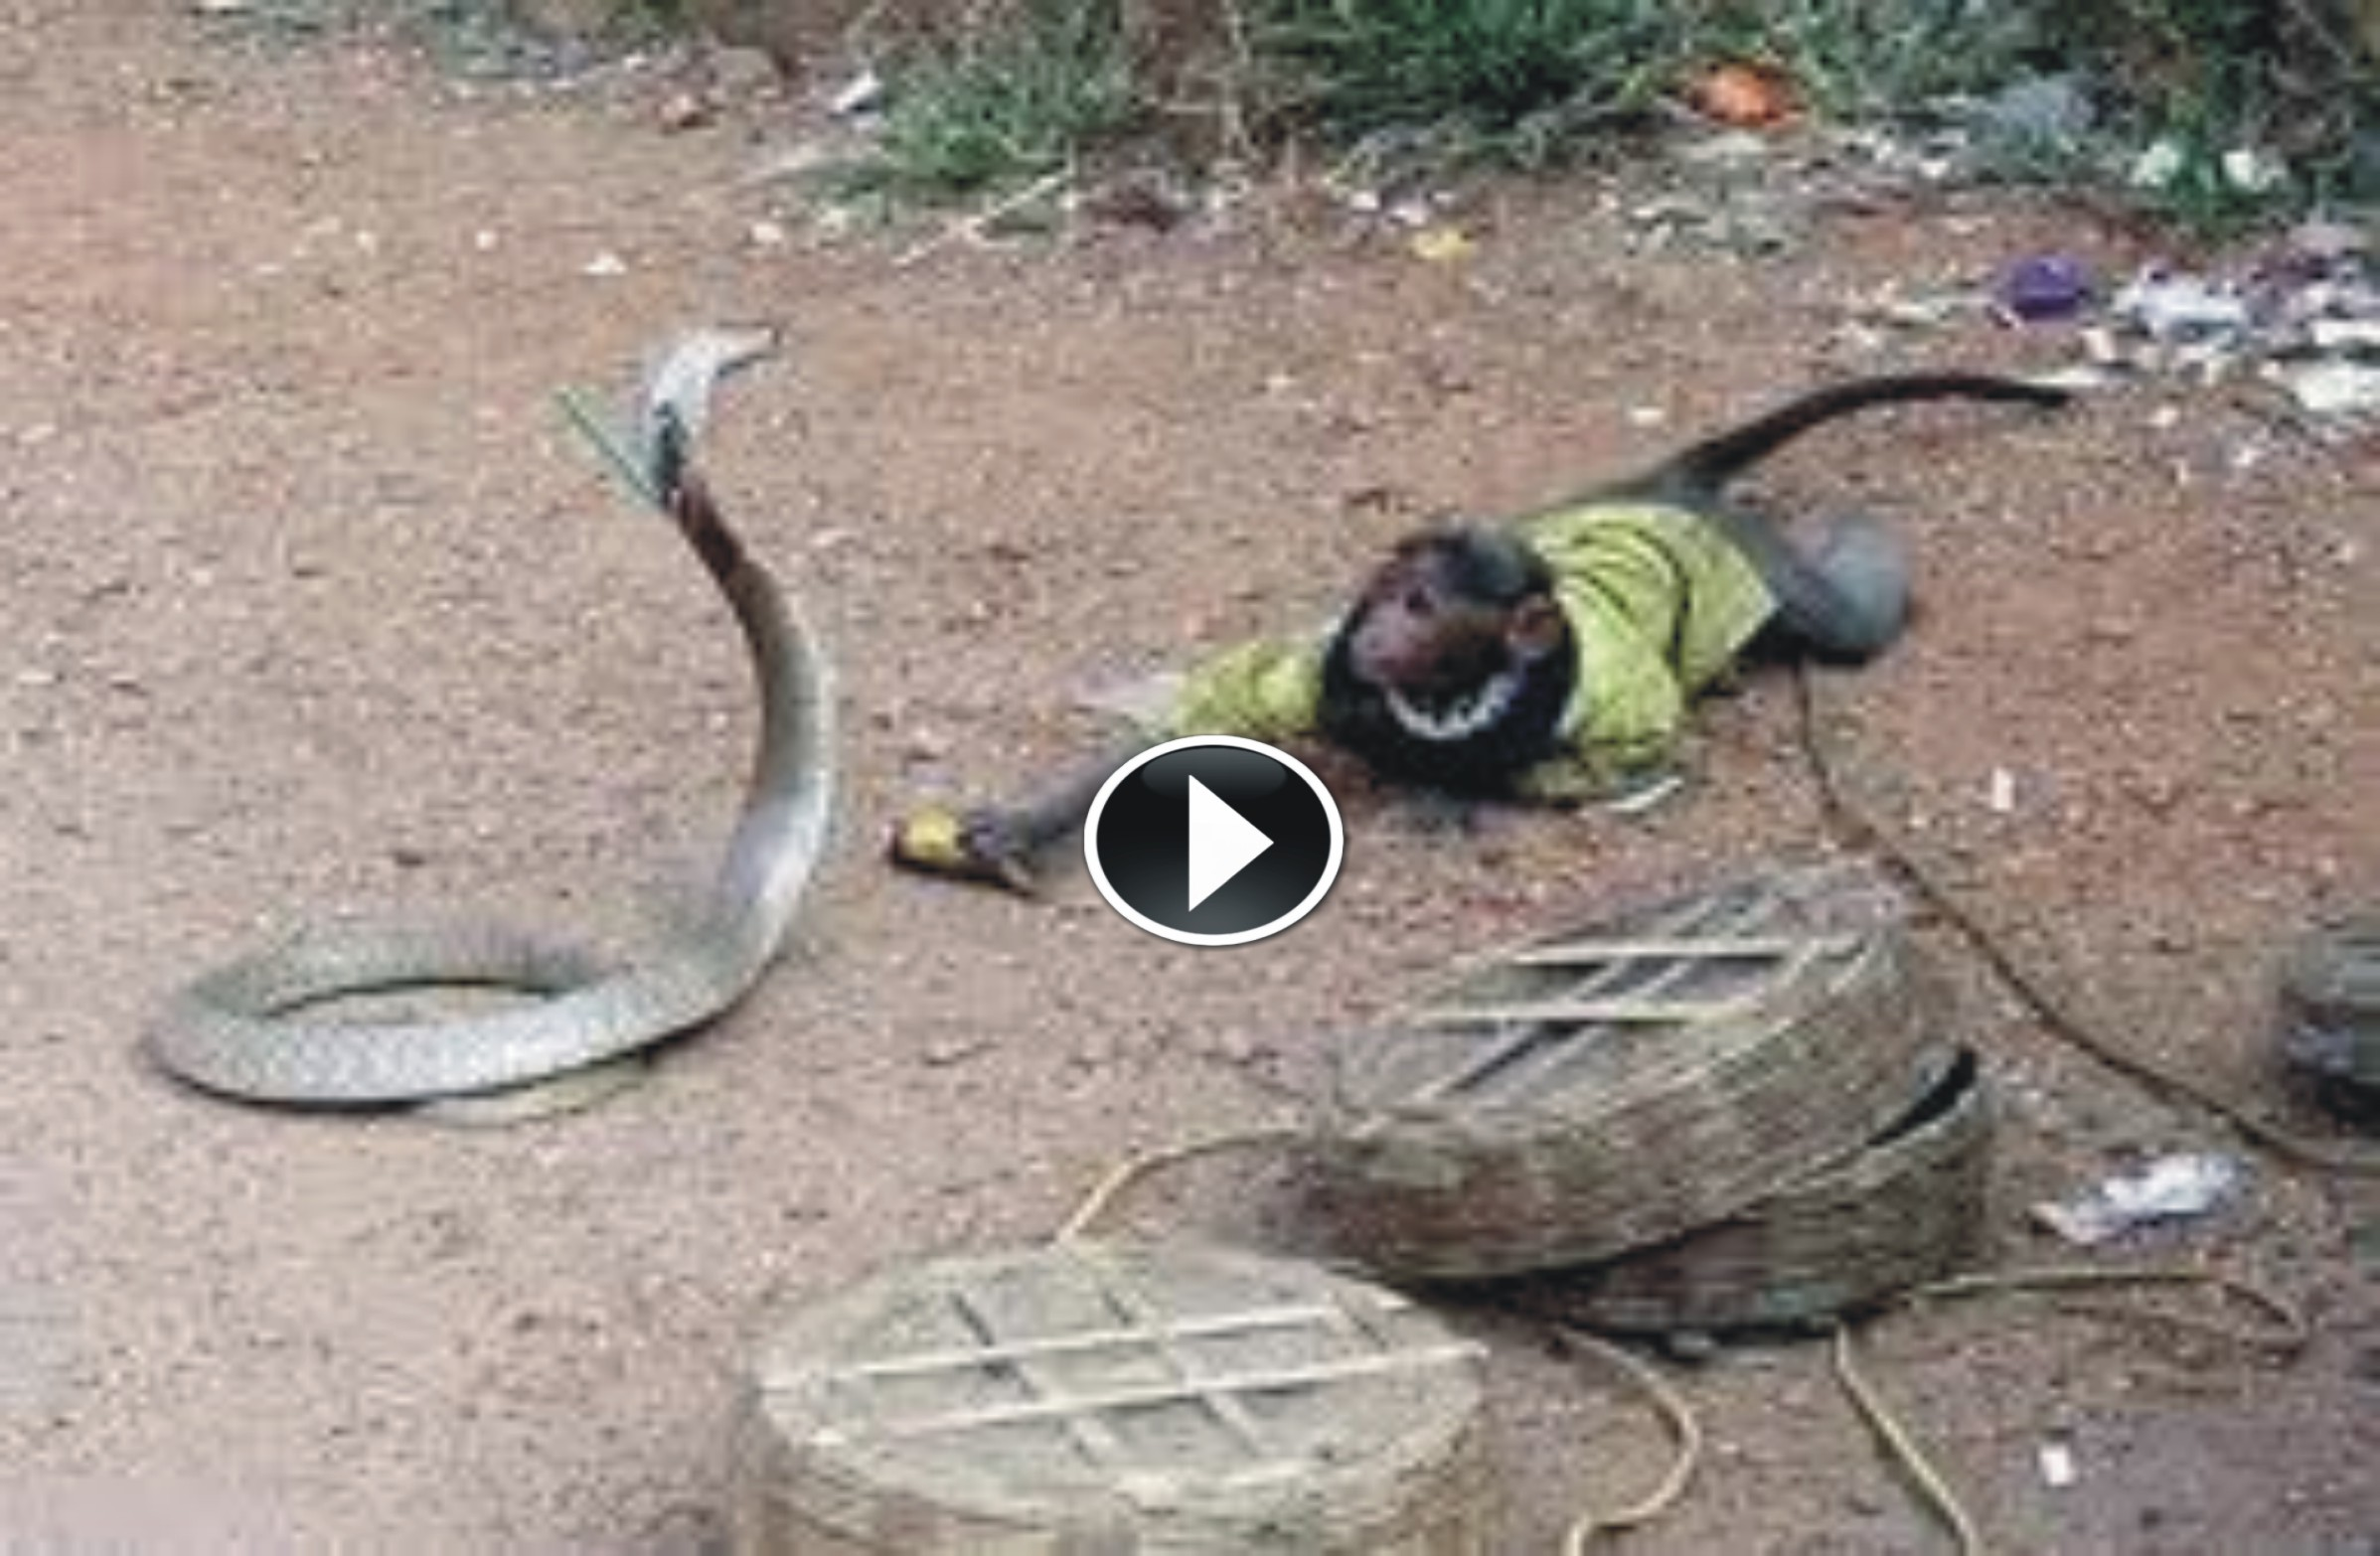 Incredible Fight Between Snake And Monkey